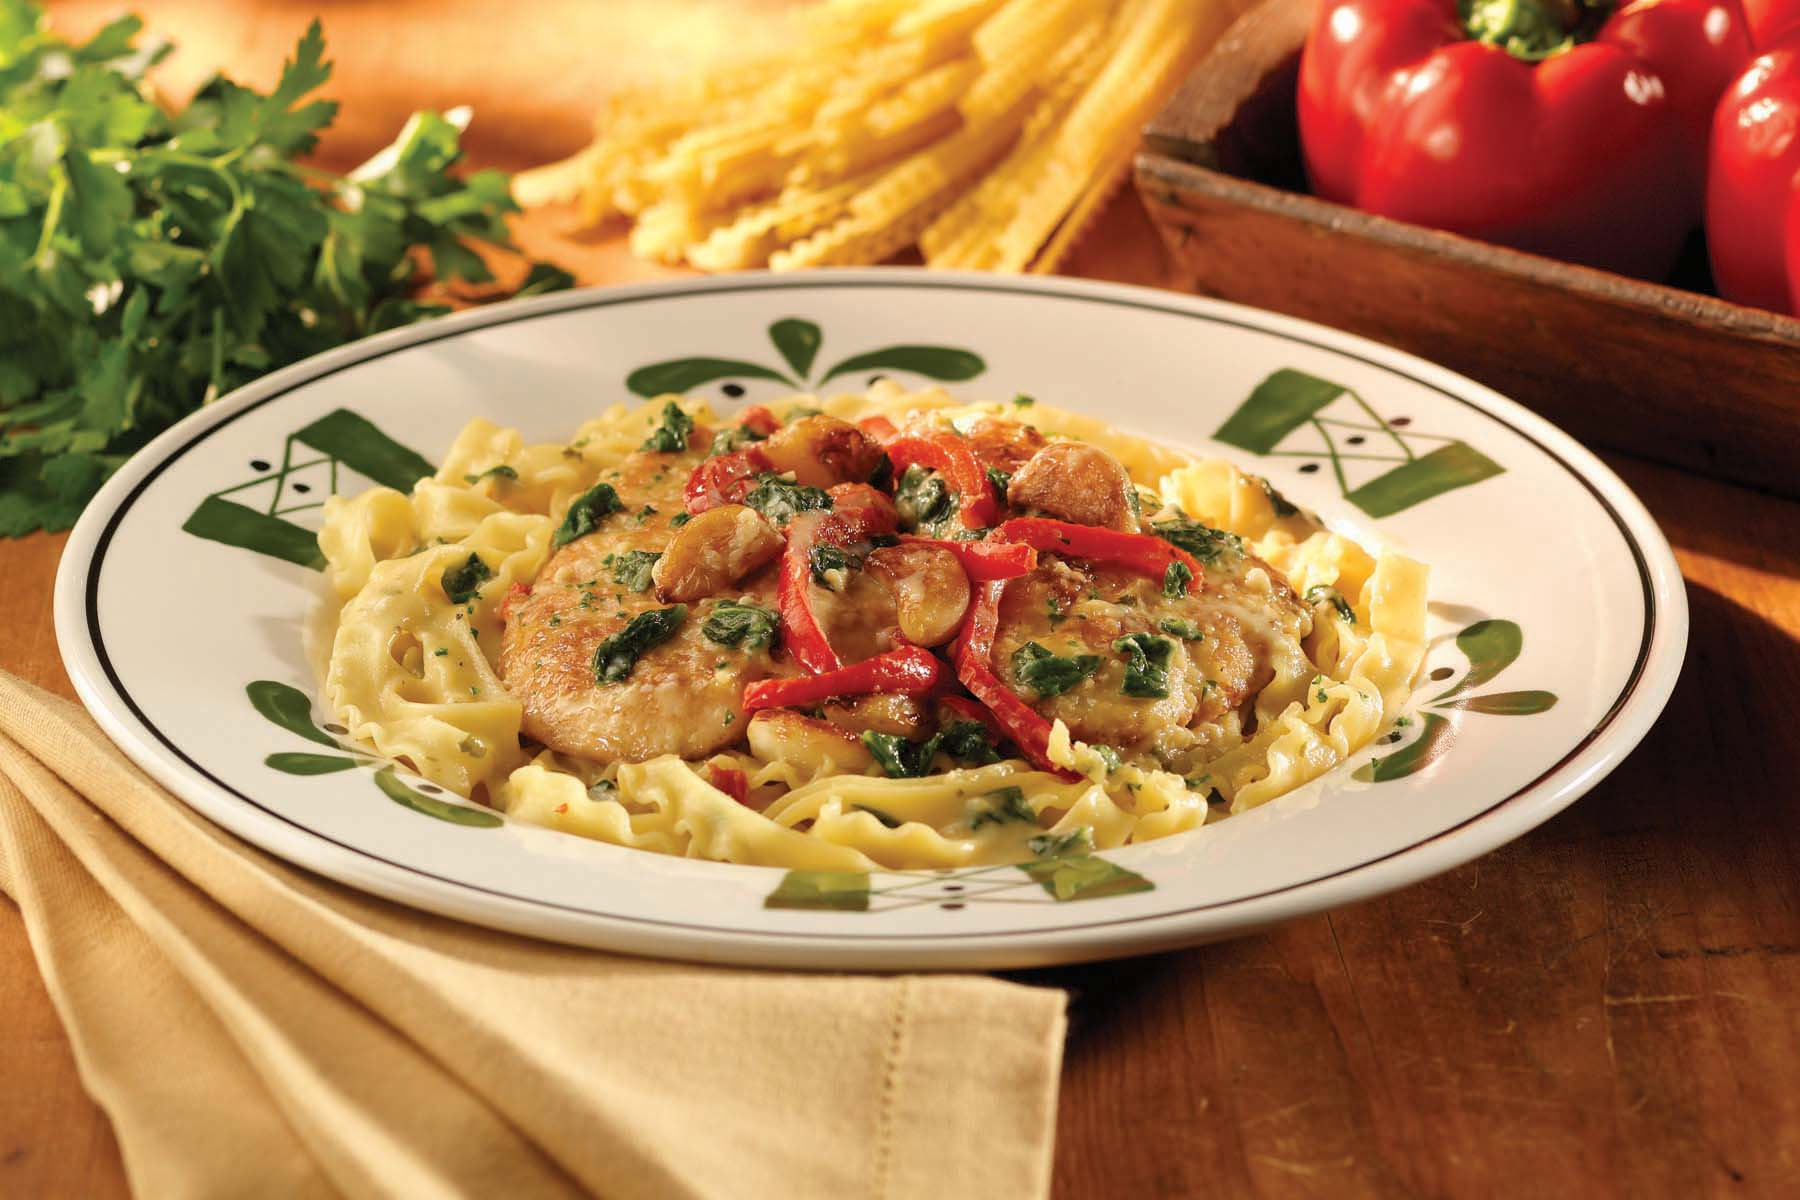 Olive Garden Menu Pdf: Quintessential Italian Cuisine, Such As Risotto And